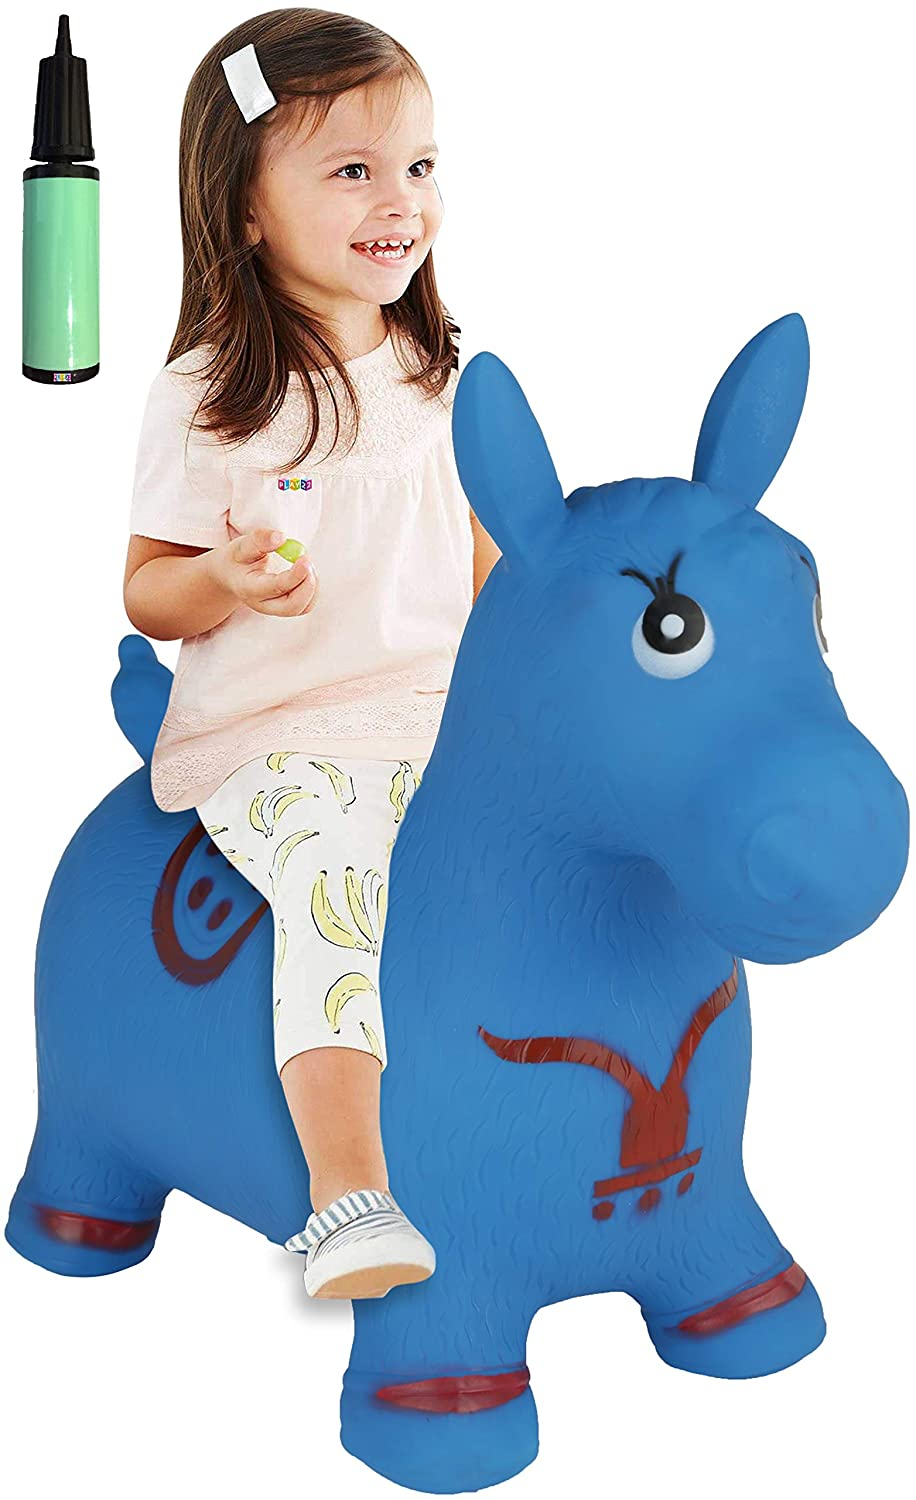 Horse Hopper BLUE - Inflatable Horse Bouncer Free Pump Included - Bouncy Horse Toys For Kids & Toddler Riding Horse Toy Great For Indoor And Outdoor Toys Play - Best Gift for Boys and Girls - Original Play22